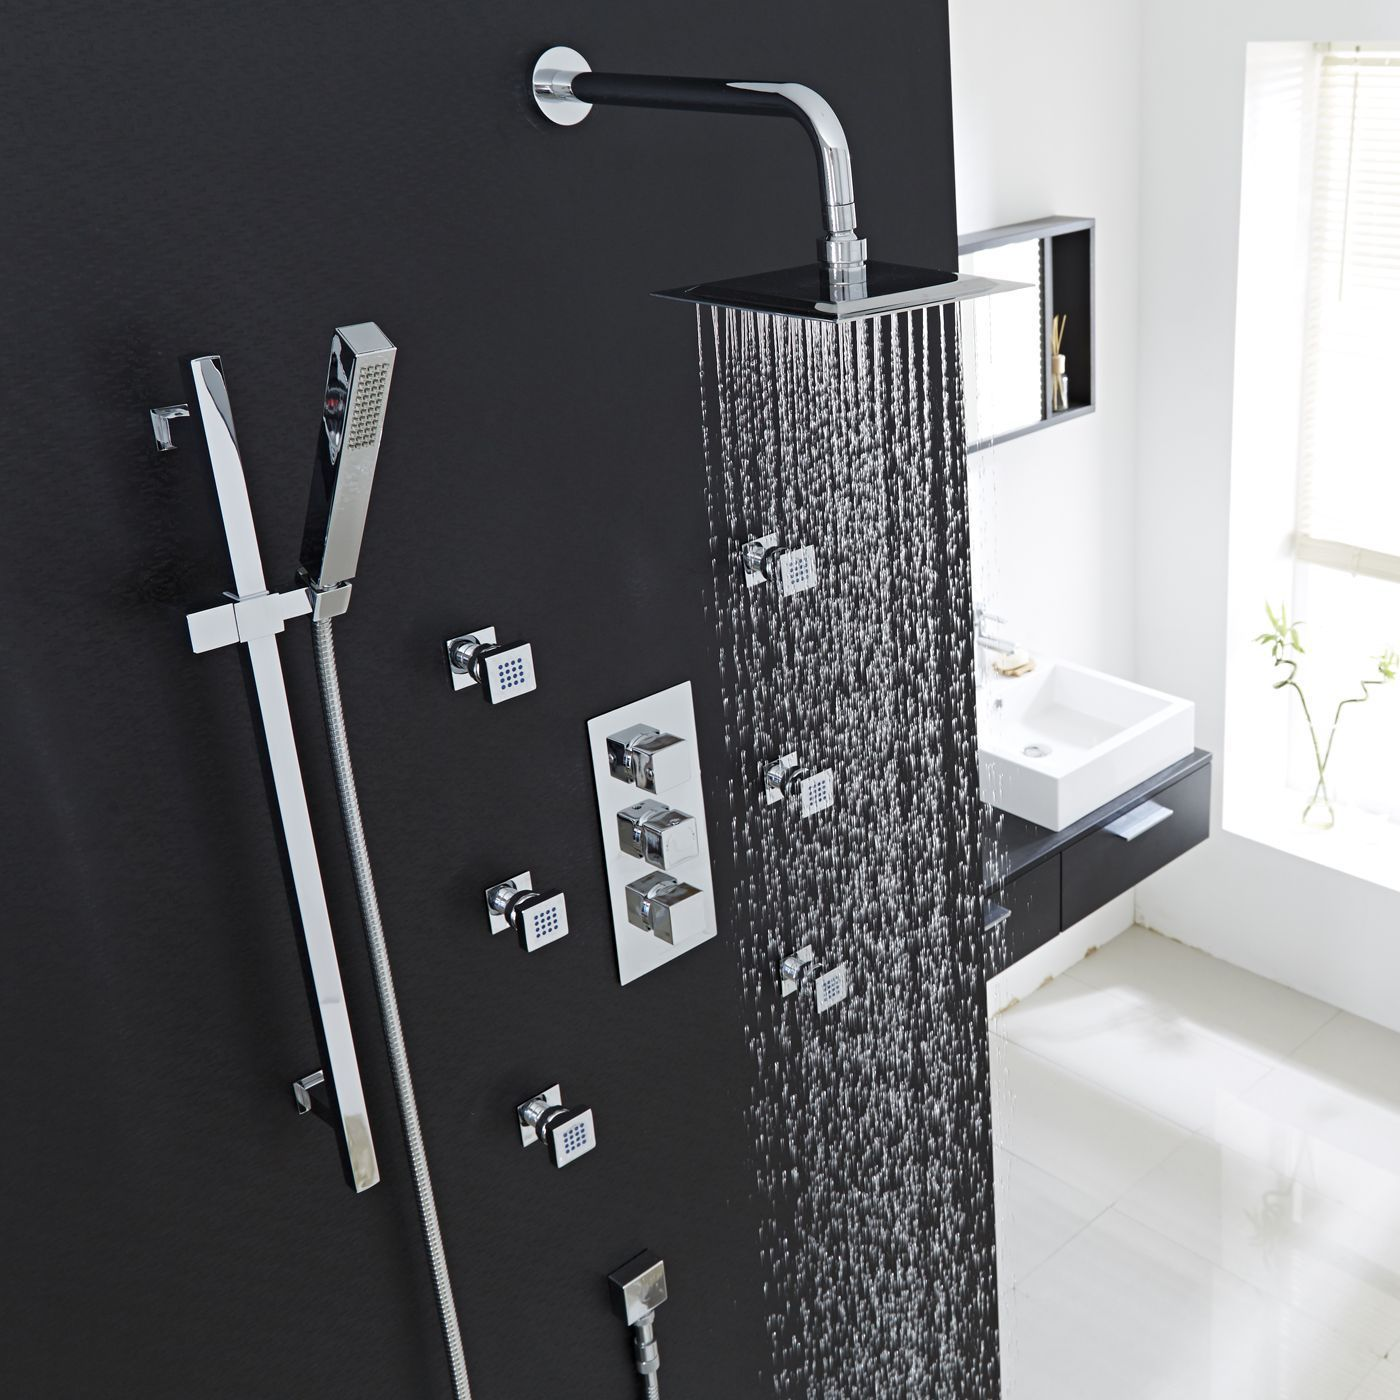 Thermostatic shower system with slider rail kit wall arm - Hudson reed avis ...